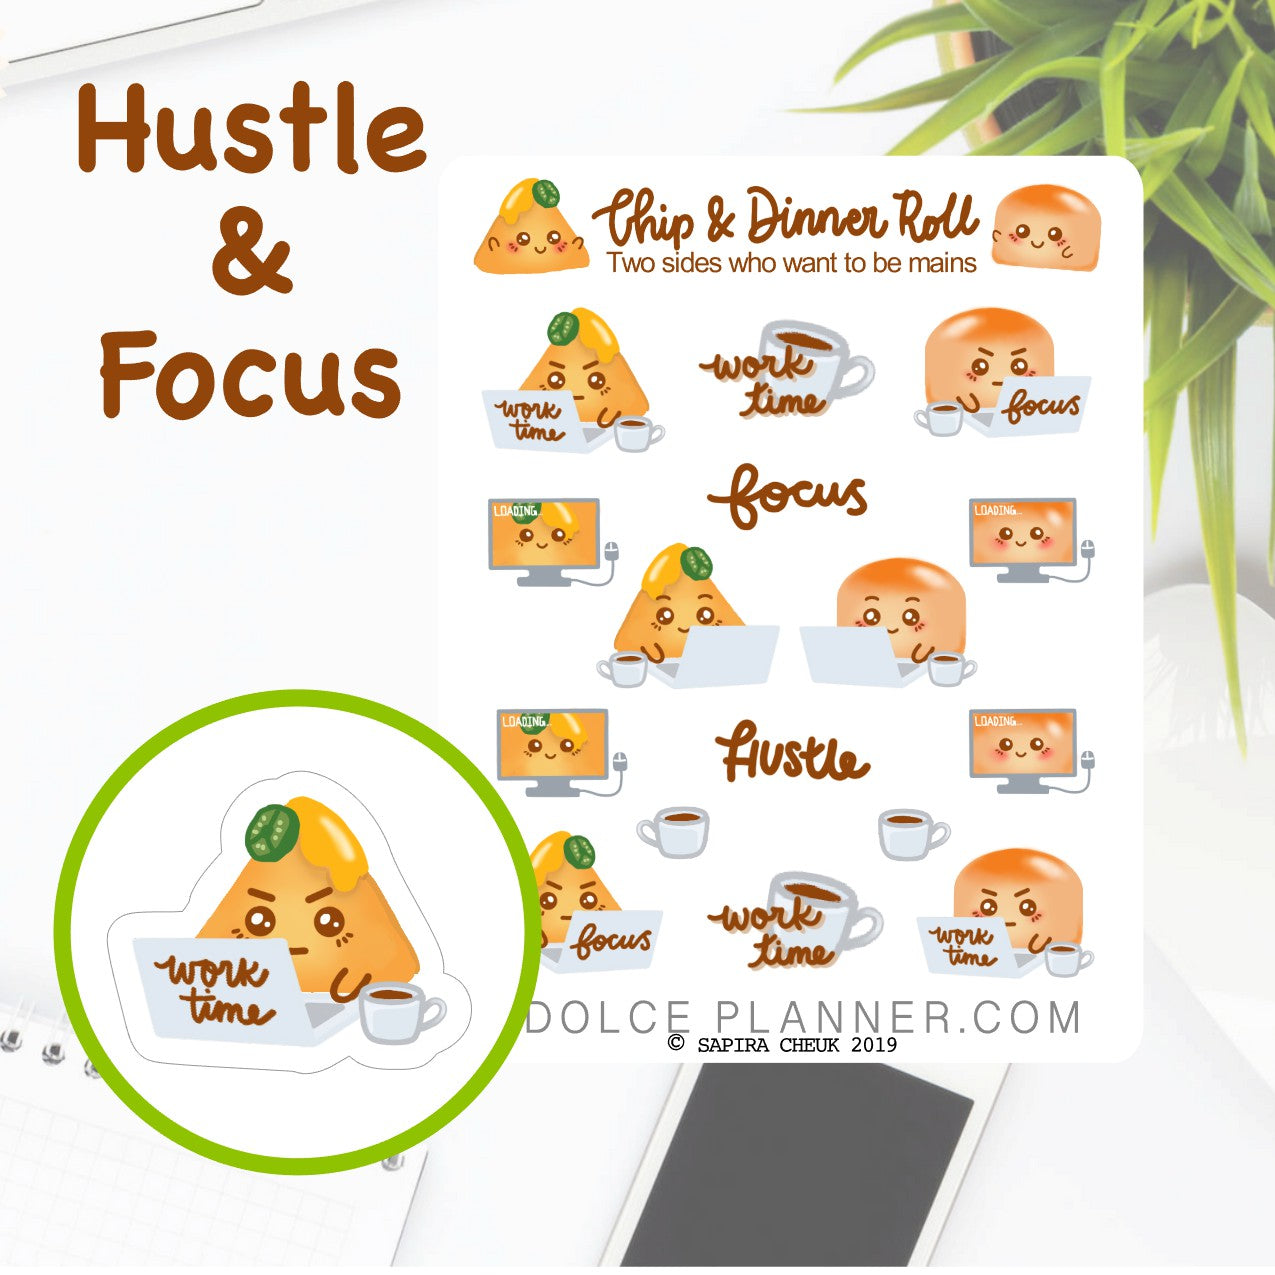 Work Hustle and Focus Chip & DInner Roll Character Planner Sticker